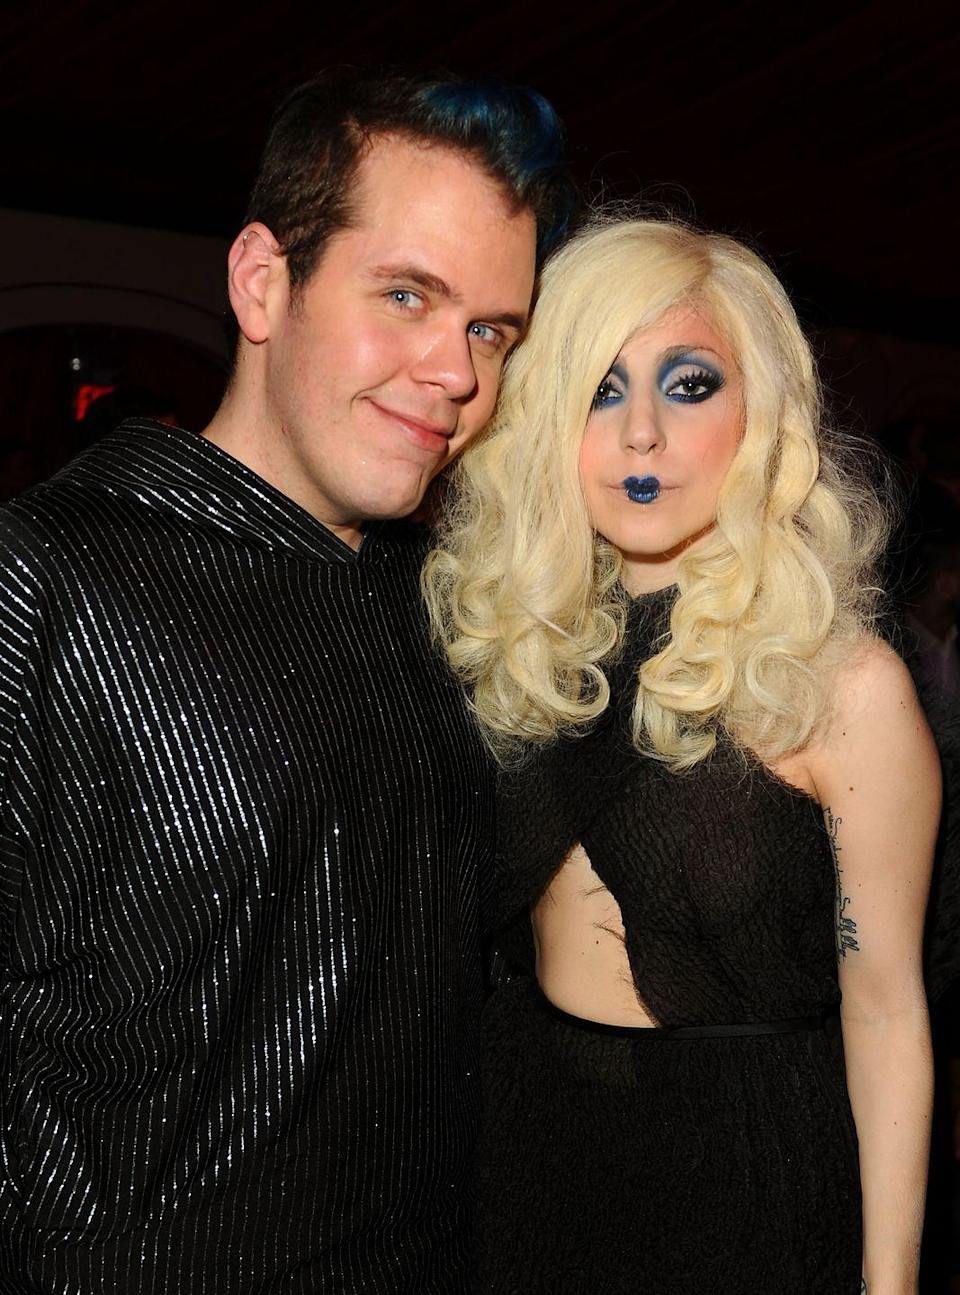 """<p>Lady Gaga and celebrity blogger Perez Hilton started out as good friends in the early 2000's, but had an intense falling-out in 2011, when Perez interviewed Gaga during a cooking segment. Reportedly, <a href=""""https://www.latimes.com/entertainment/la-xpm-2013-nov-12-la-et-mg-lady-gaga-perez-hilton-feud-howard-stern-20131112-story.html"""" rel=""""nofollow noopener"""" target=""""_blank"""" data-ylk=""""slk:Gaga felt &quot;betrayed&quot;"""" class=""""link rapid-noclick-resp"""">Gaga felt """"betrayed""""</a> when Perez started asking her """"really terrible questions"""" and """"being very negative about 'Born This Way.'"""" Their feud only escalated in the coming years, with the two continuously exchanging insults and attacks on social media.</p><p><strong>RELATED: </strong><a href=""""https://www.goodhousekeeping.com/life/entertainment/a25737162/how-did-lady-gaga-get-her-name/"""" rel=""""nofollow noopener"""" target=""""_blank"""" data-ylk=""""slk:How Lady Gaga Got Her Name and Why She Doesn't Use Her Real One"""" class=""""link rapid-noclick-resp"""">How Lady Gaga Got Her Name and Why She Doesn't Use Her Real One</a></p>"""